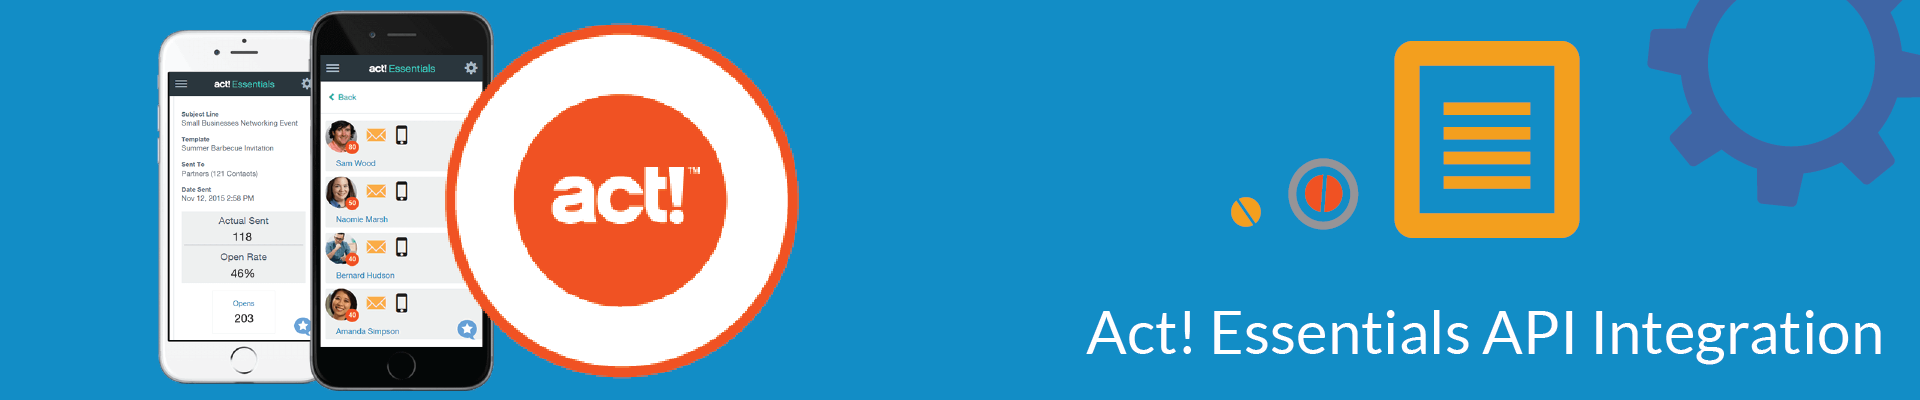 act_essentials_banner-01.png